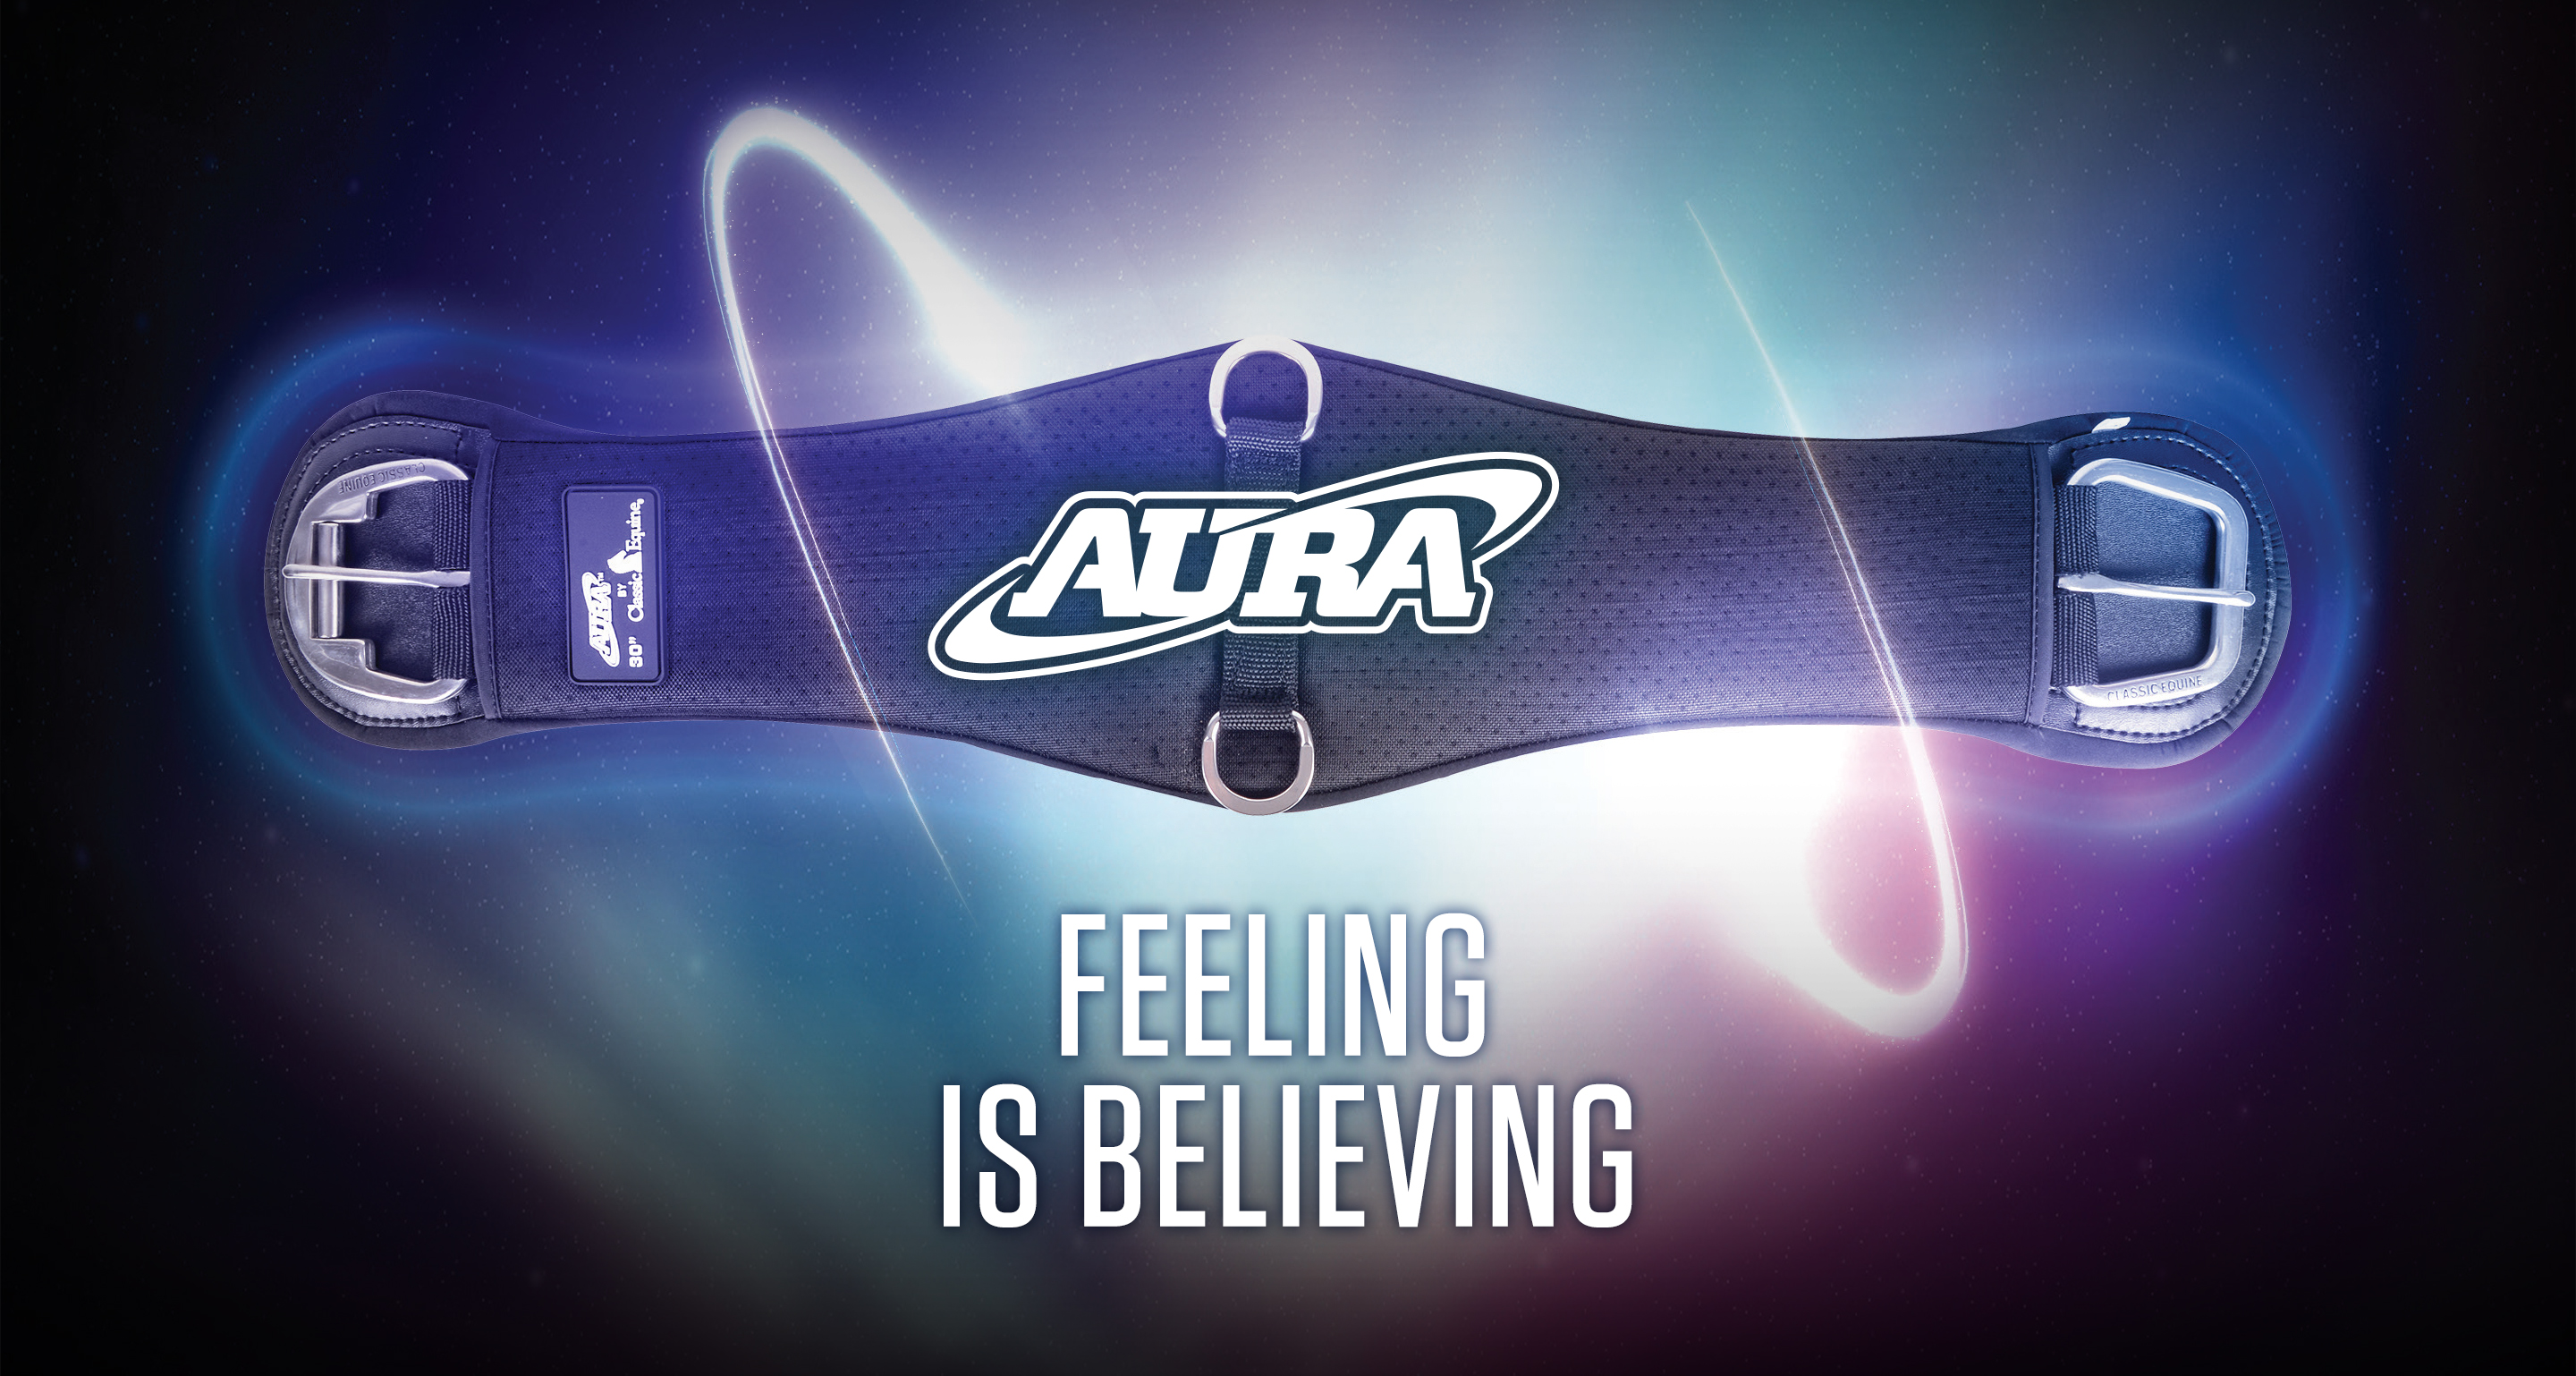 The Aura Cinch is breathable as well as tough and durable